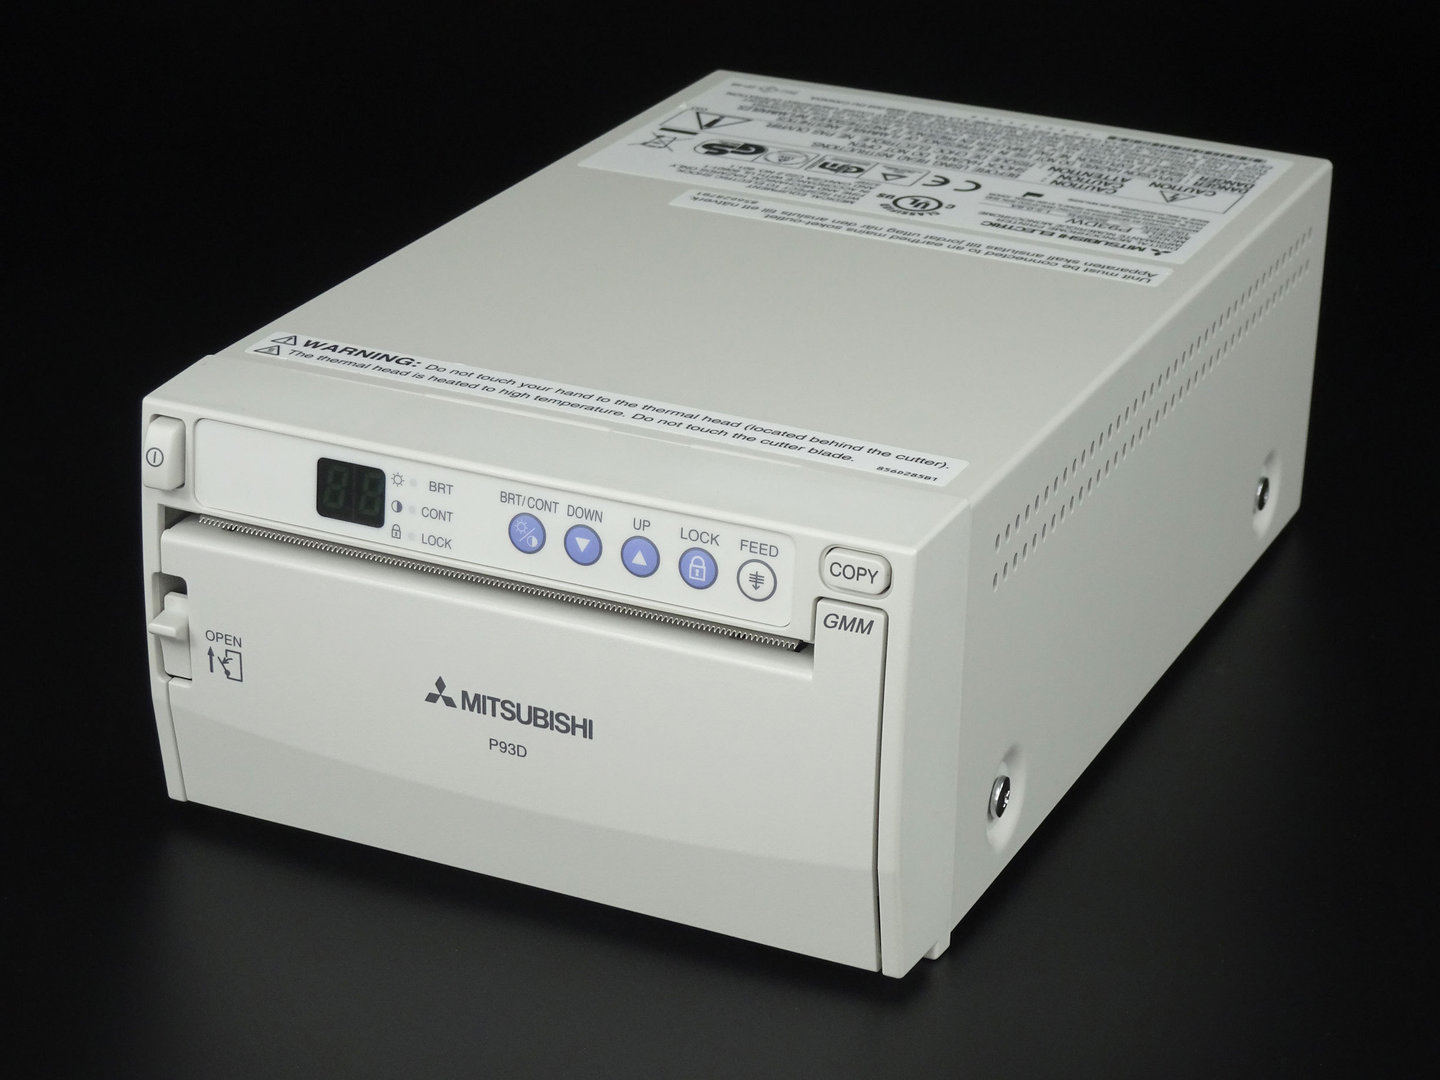 Mitsubishi Digital Monochrome Printer P93DW